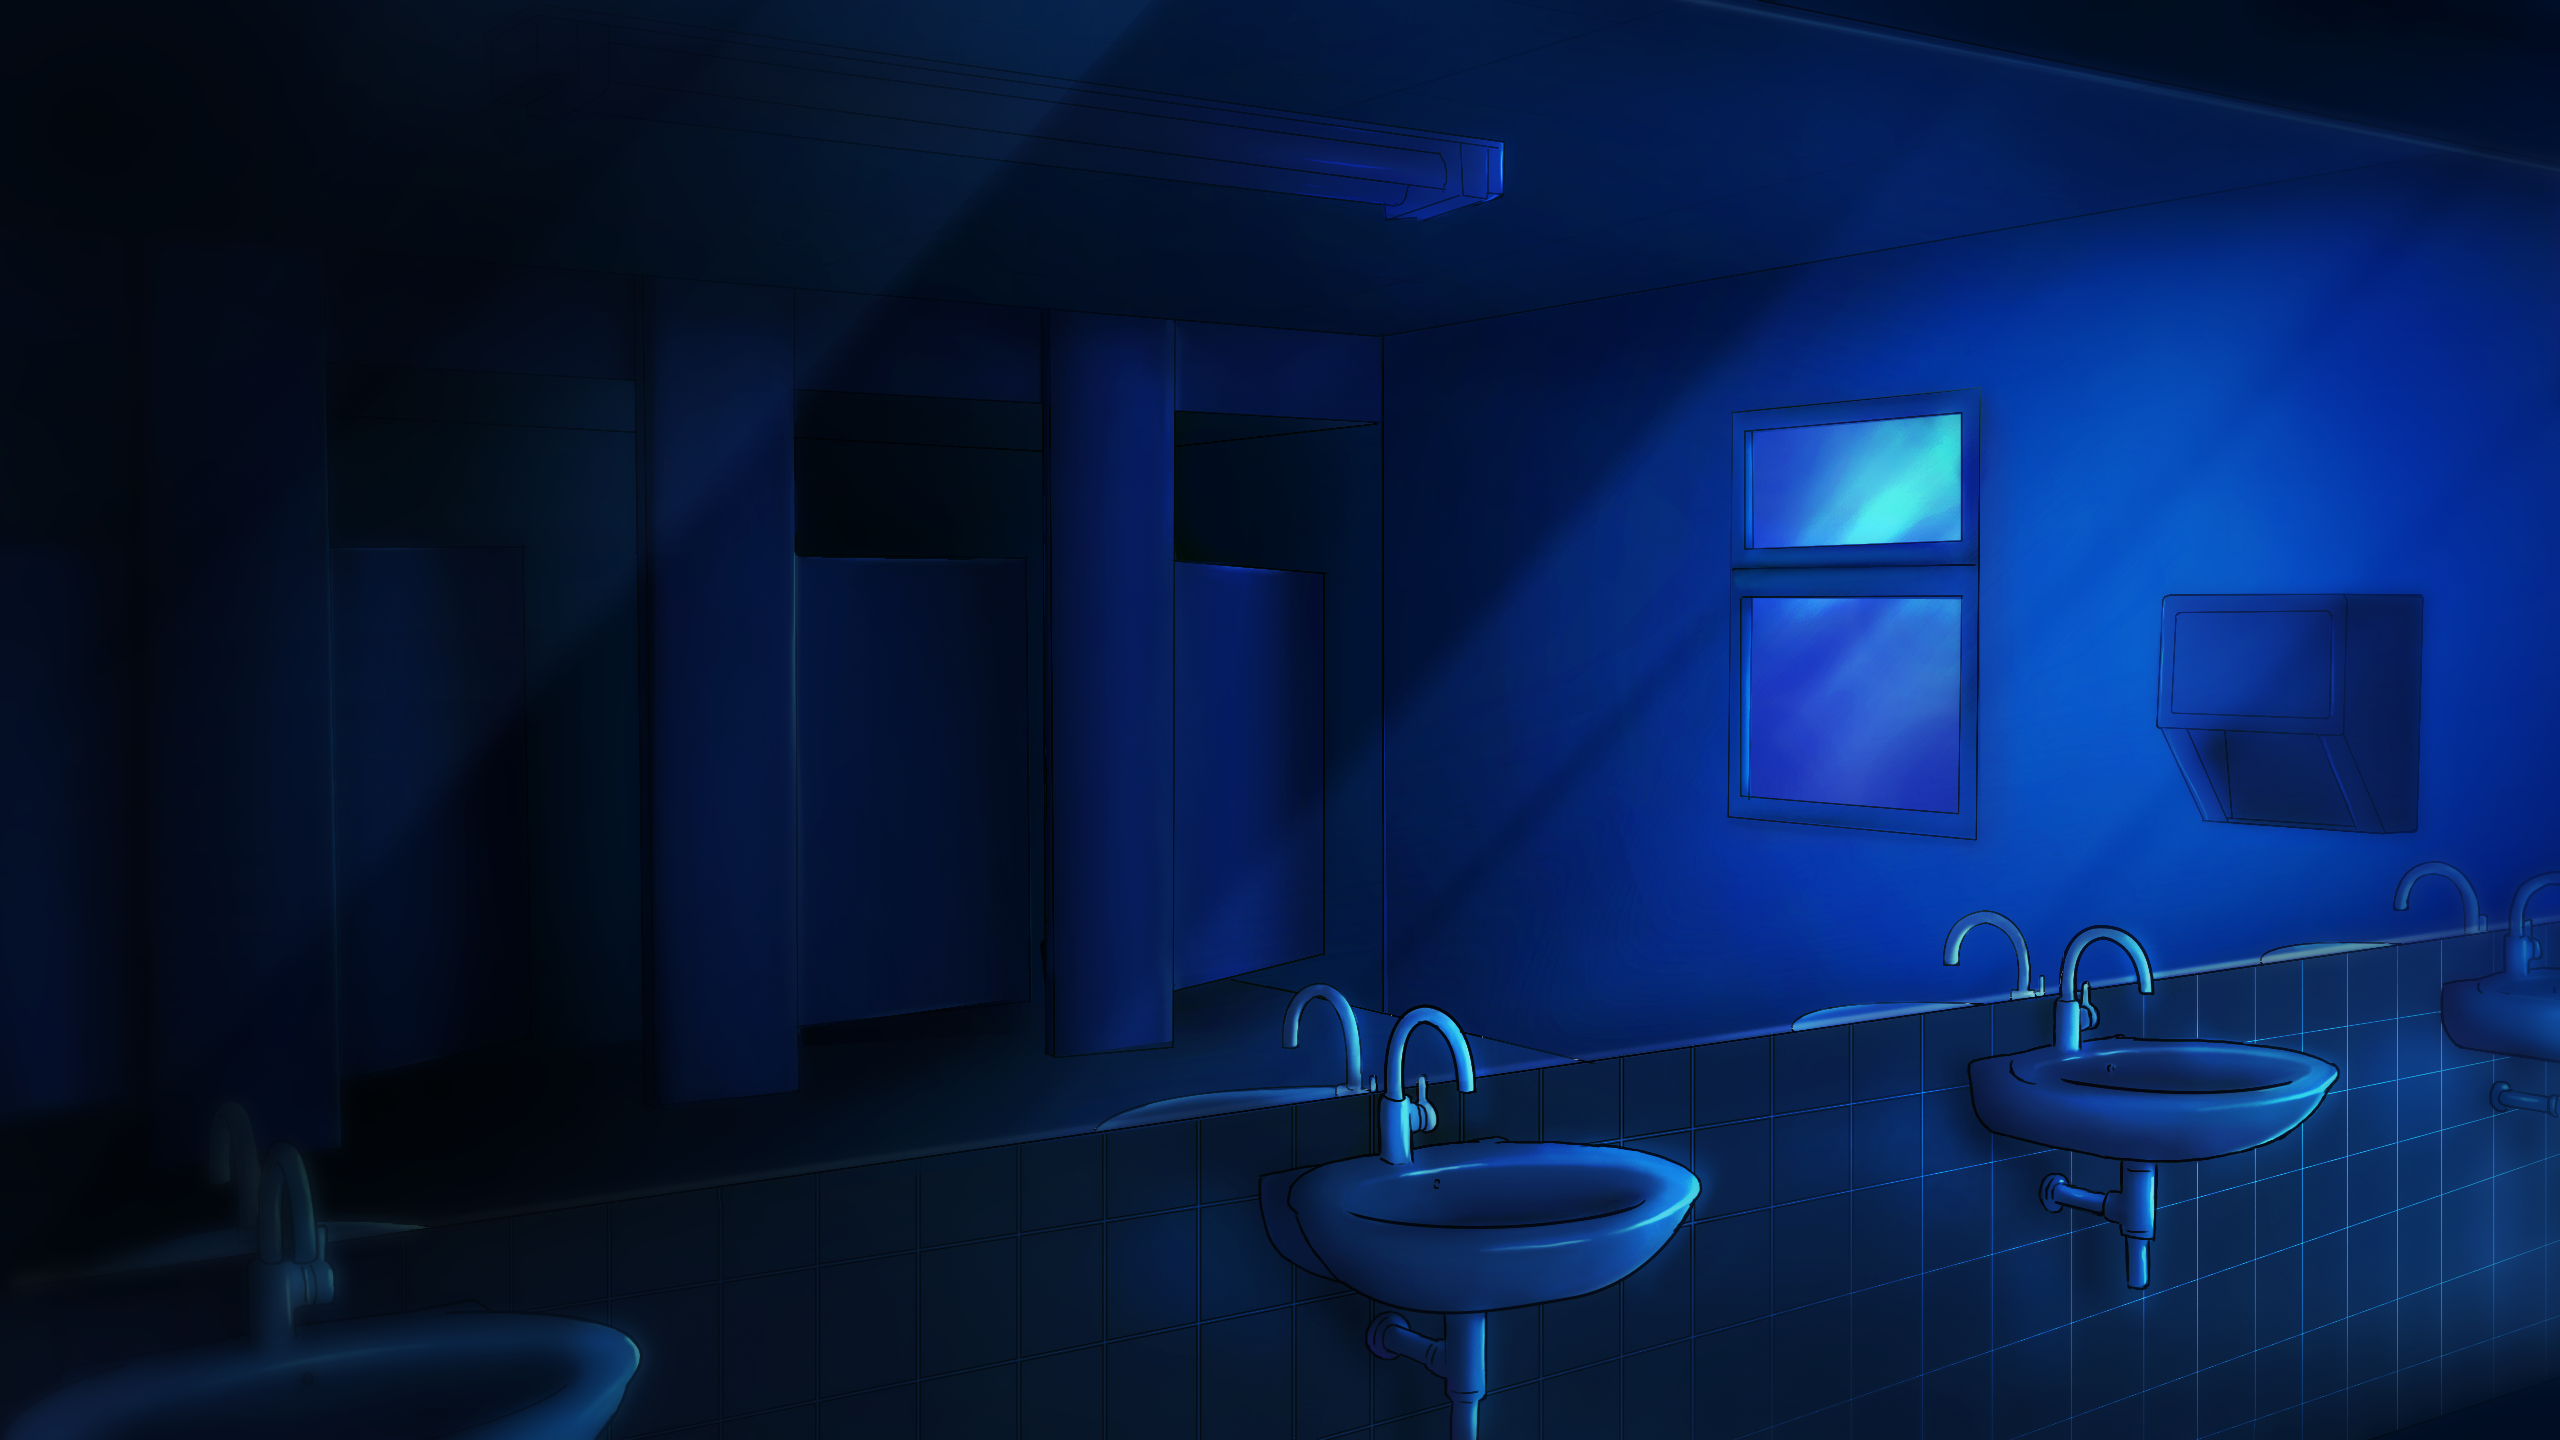 School Bathroom Night Time By Enigma Xiii On Deviantart